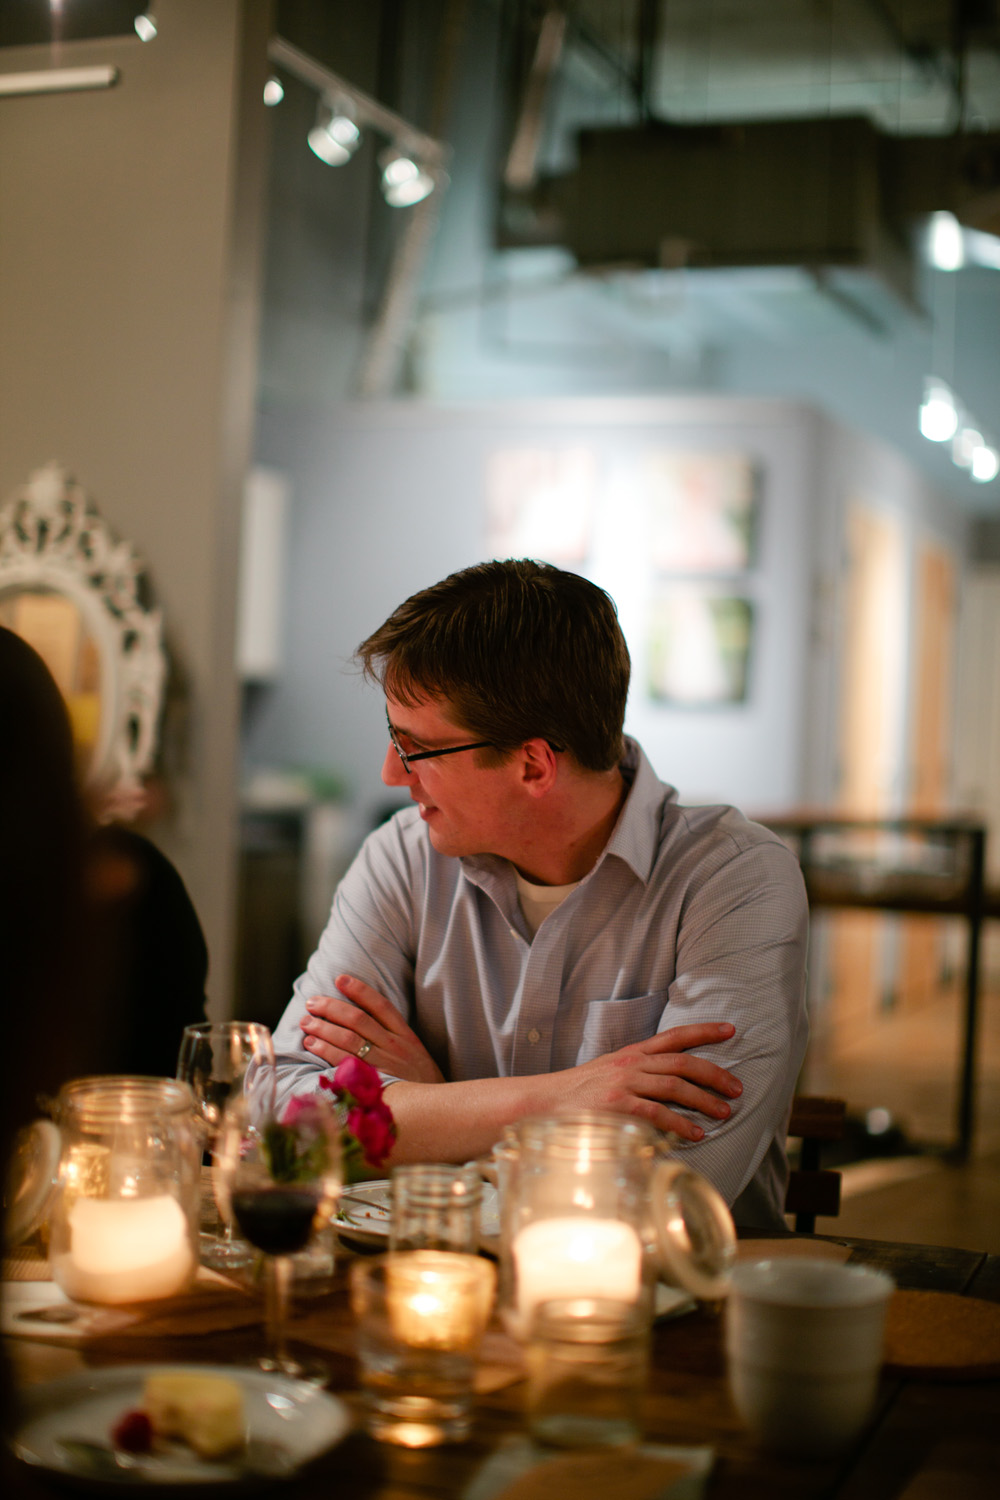 Homespun ATL Dinner Feb 2013Atlanta, GA Photography by Morgan Blake_Low Res073.jpg